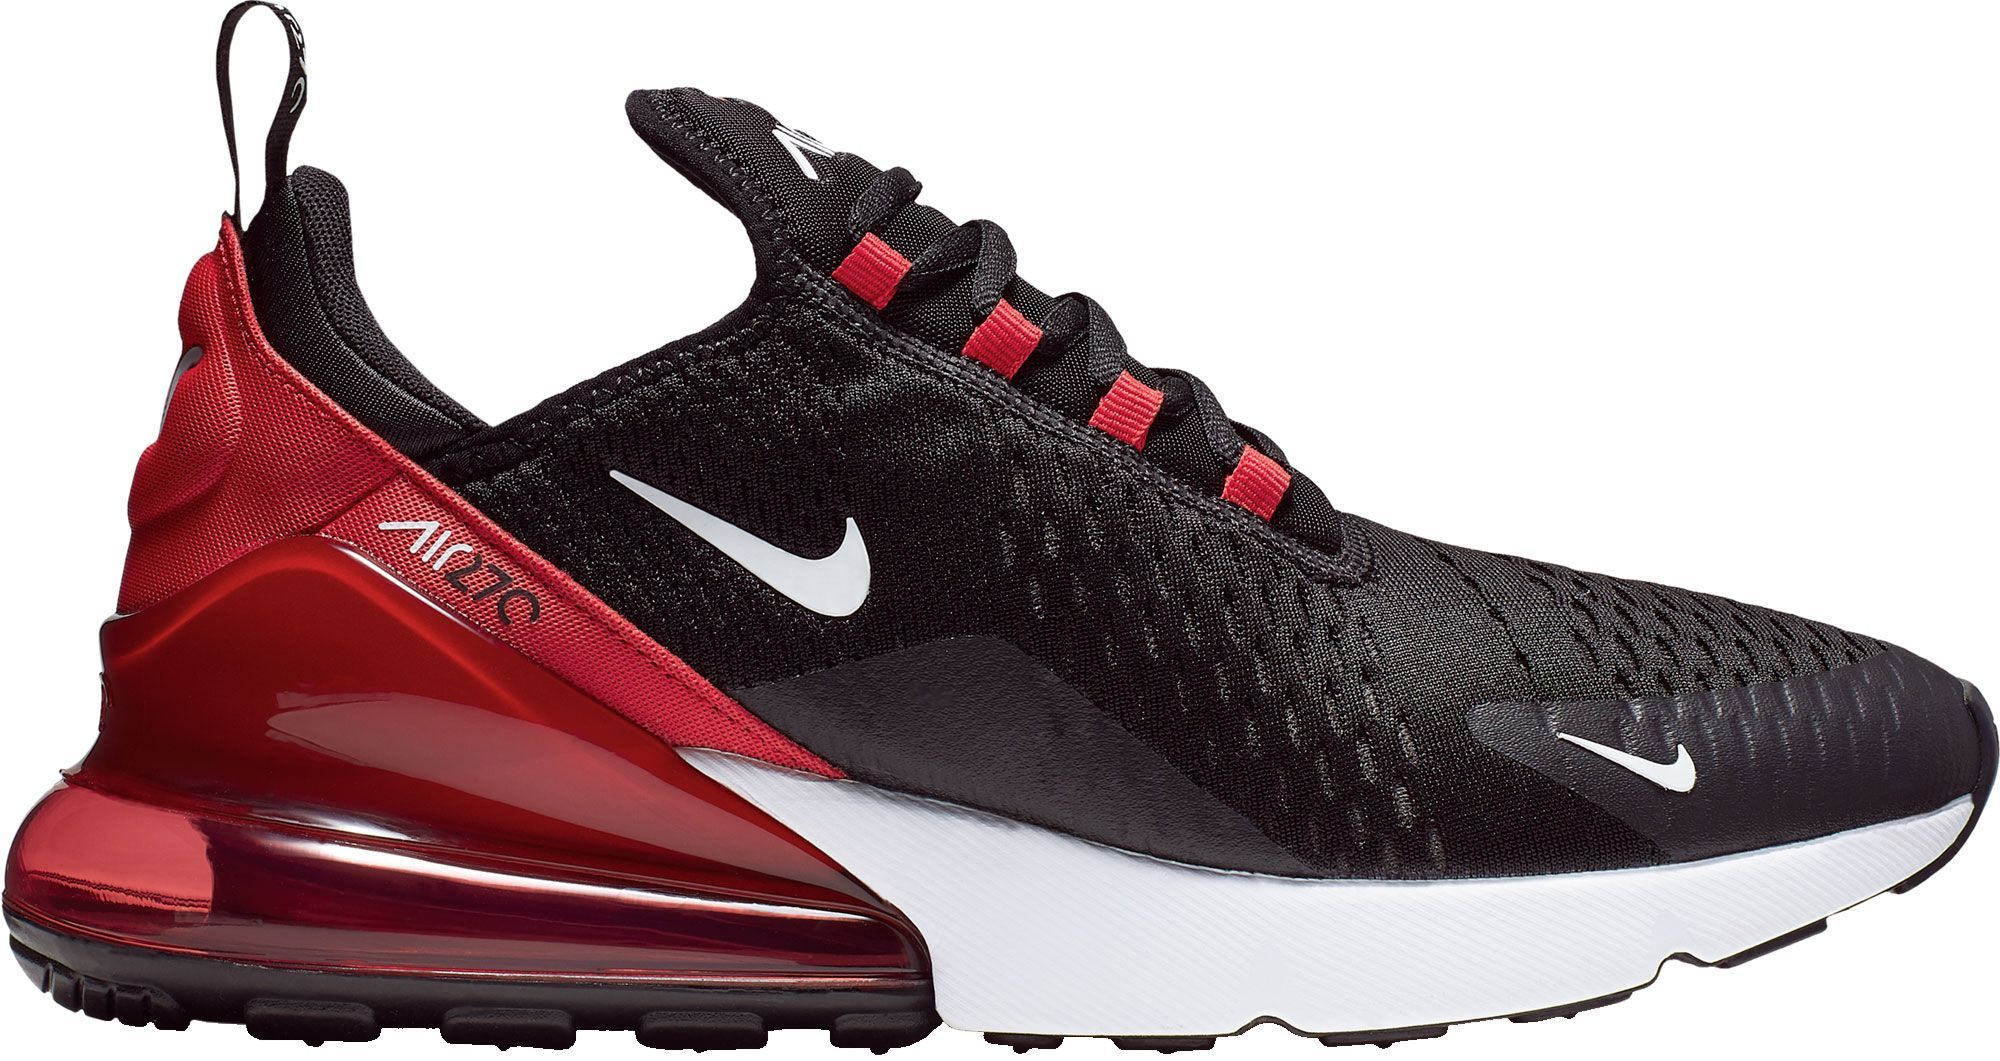 sale retailer f5b27 c09e5 Nike Men's Air Max 270 Shoes in 2019   Products   Air max ...